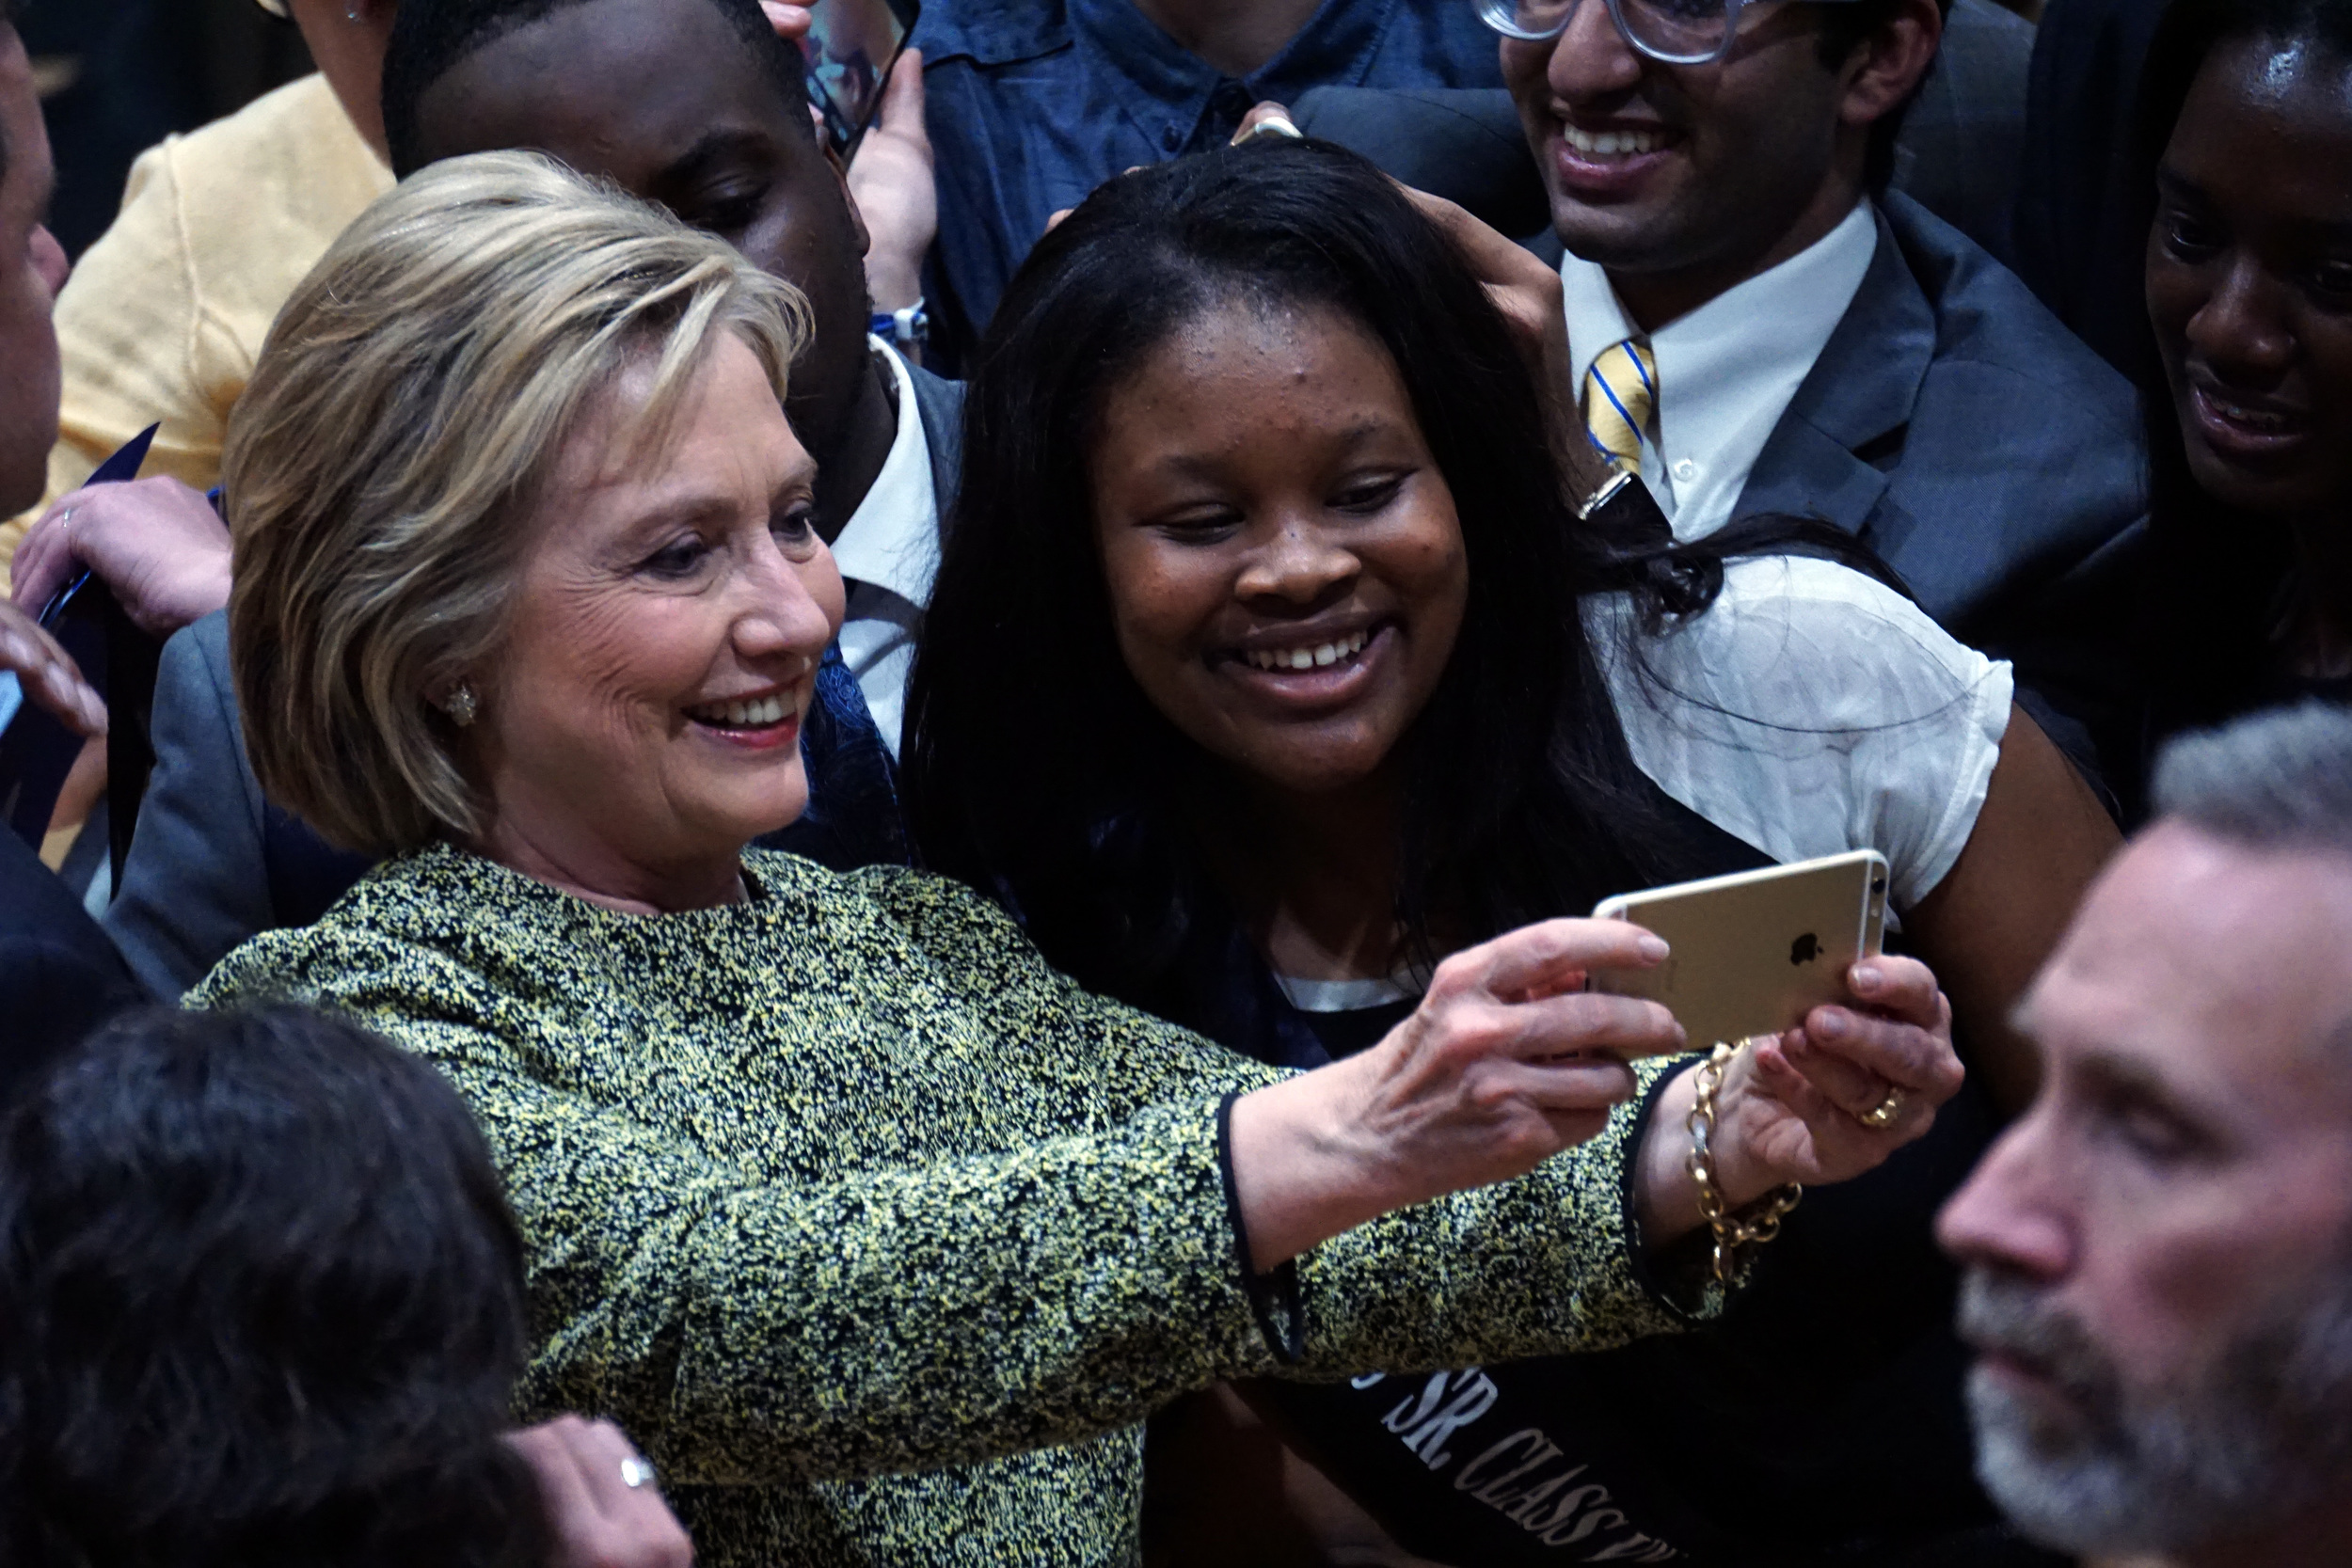 Hillary Clinton takes a selfie with a supporter at a campaign rally at Hillside High School in Durham, North Carolina. Photo by Nathania Johnson, Licensing: Creative Commons.